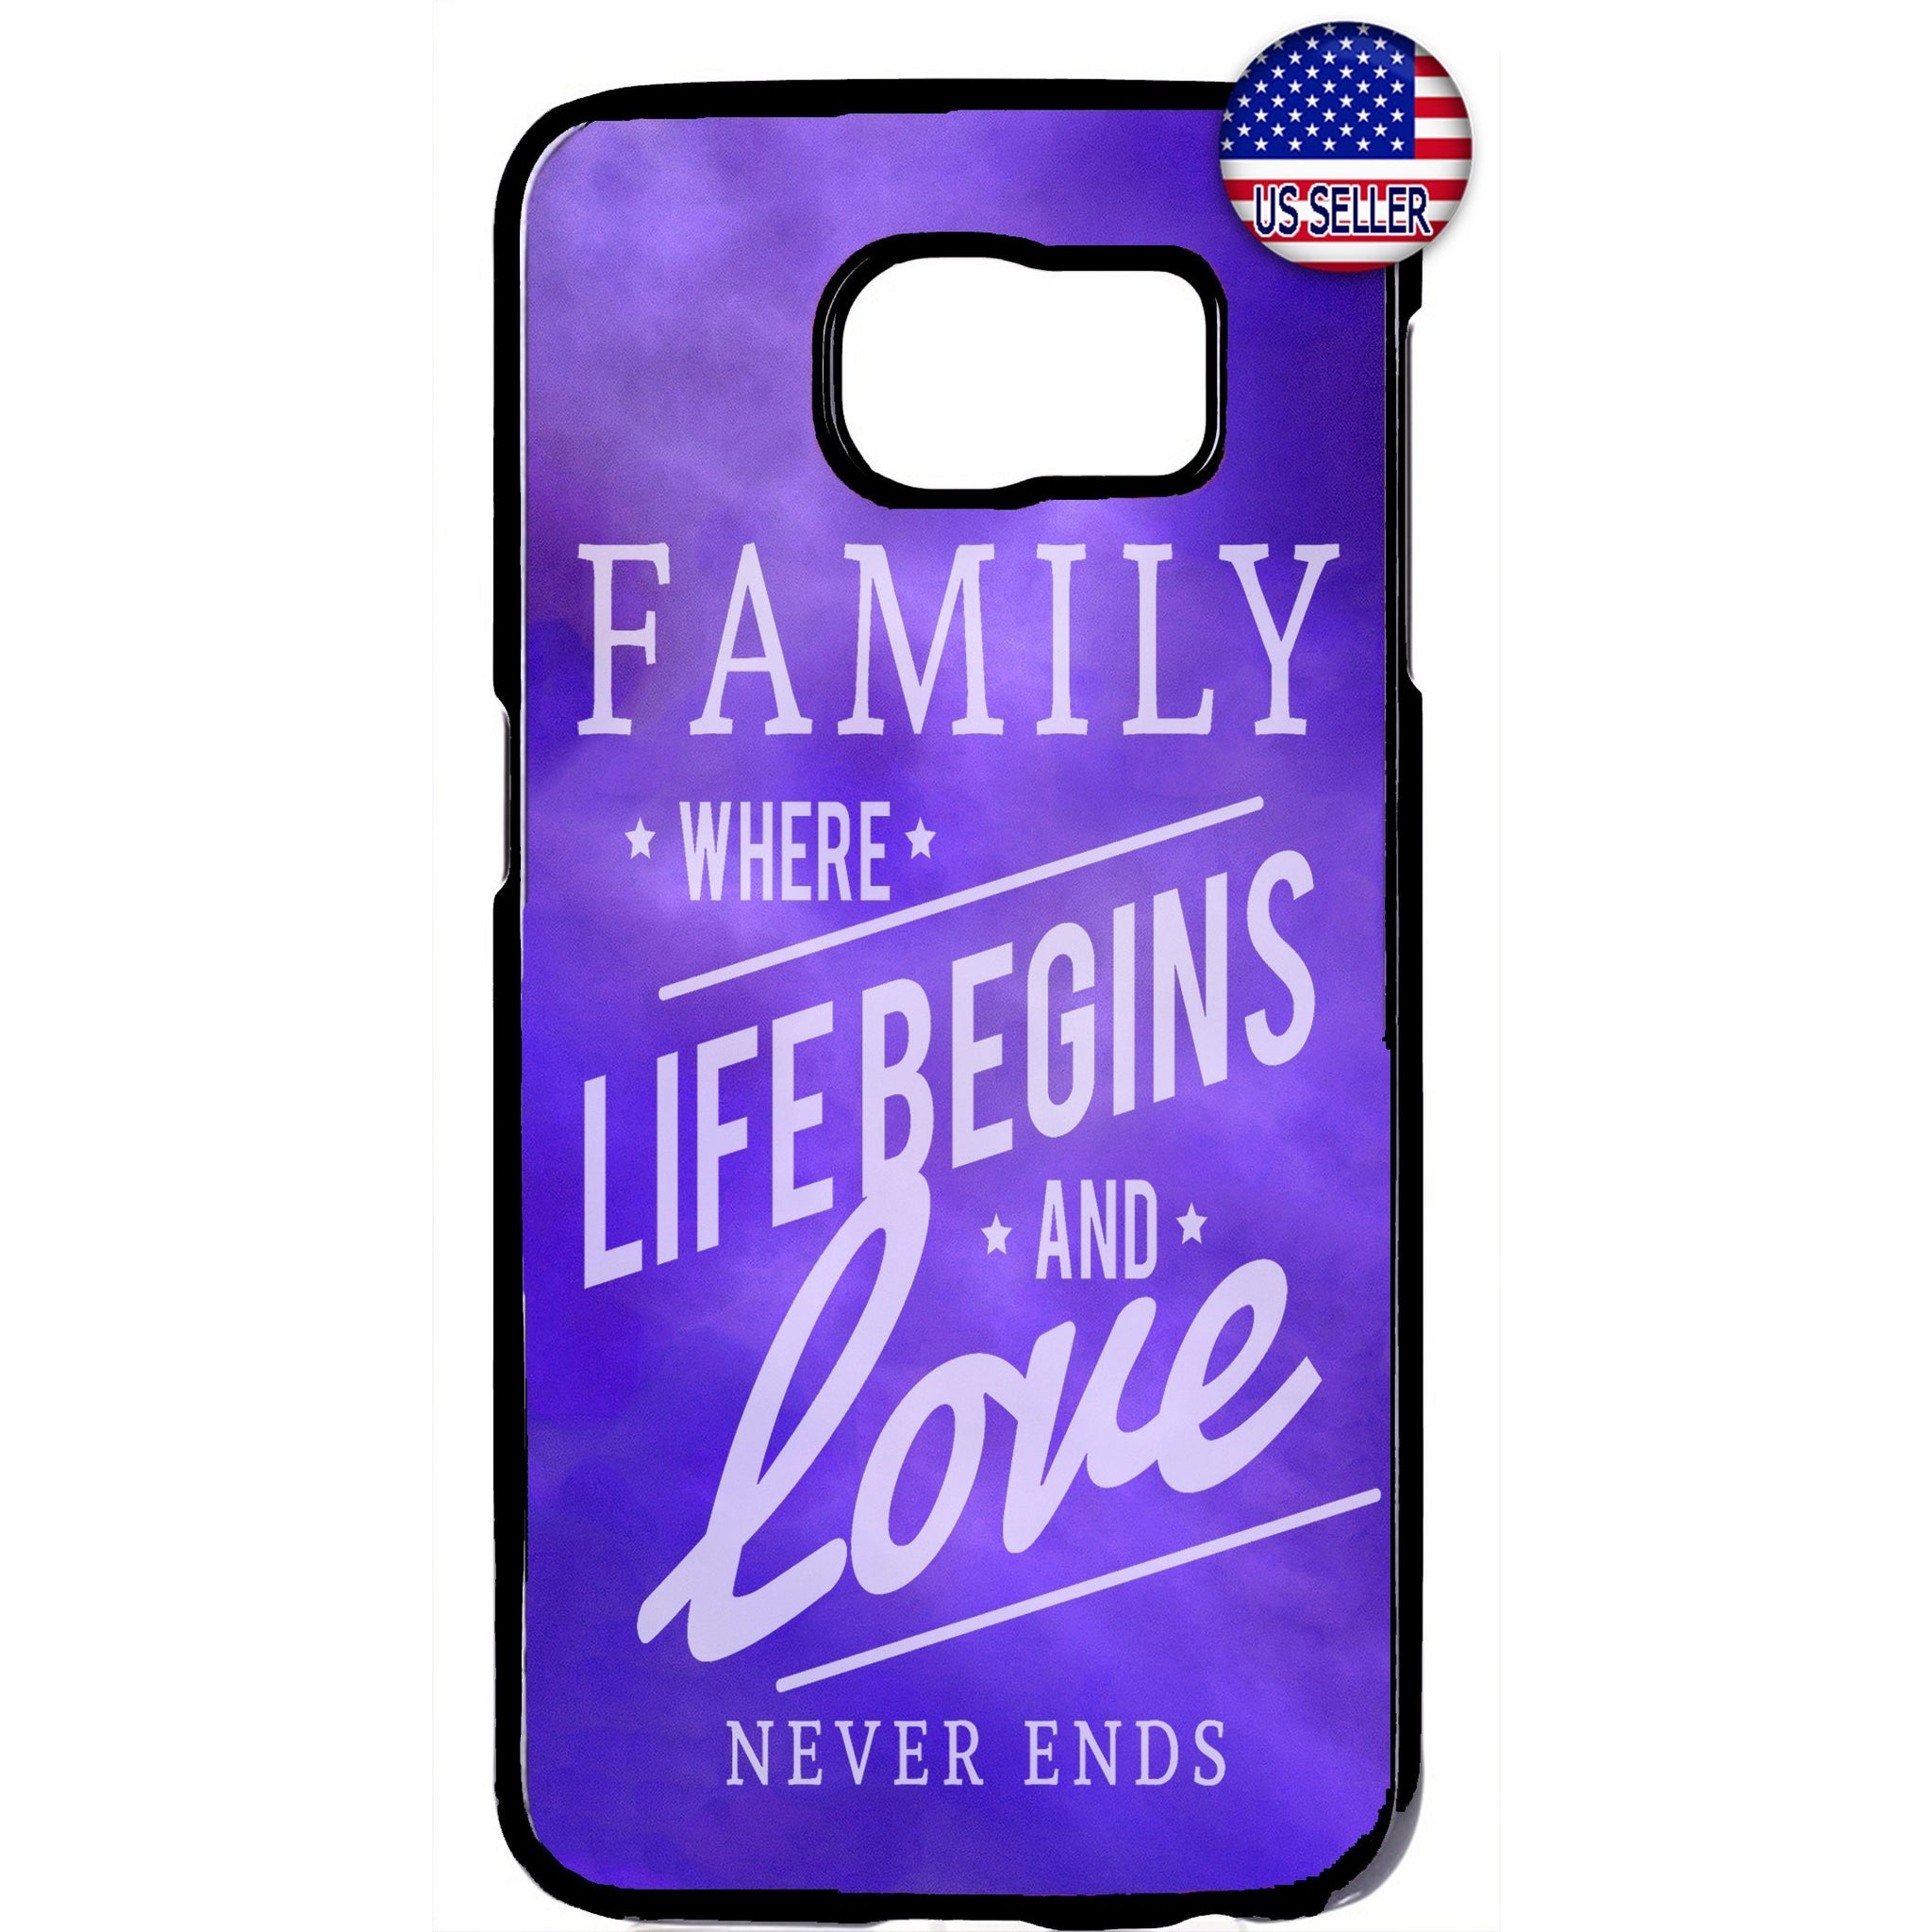 Family & Love Live Begins Rubber Case Cover For Samsung Galaxy Note